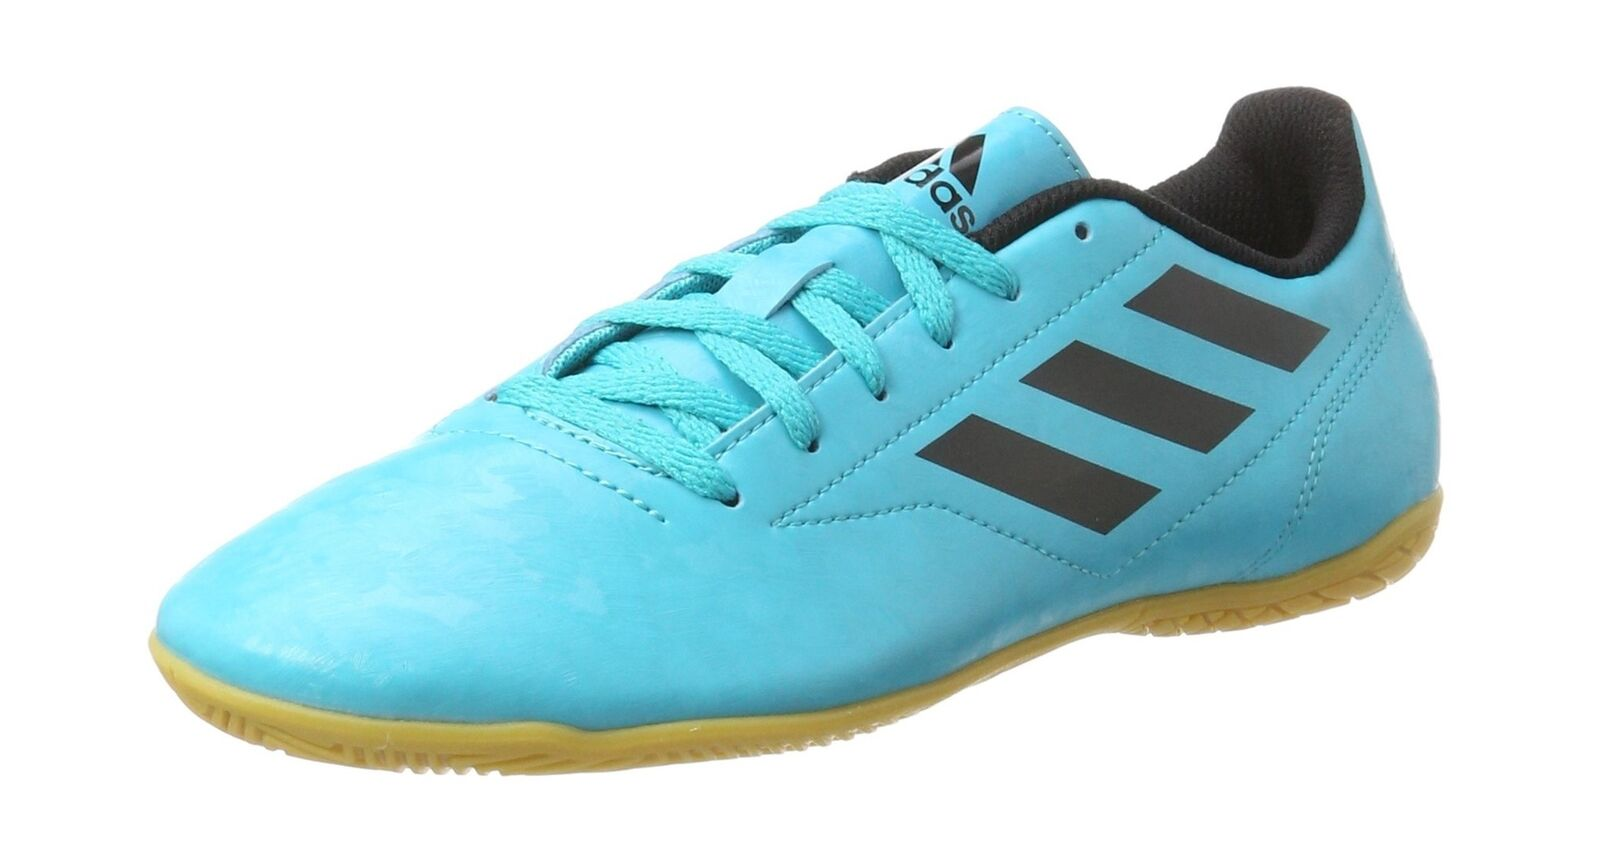 Adidas Men's Conquisto Ii in Footbal shoes 9 UK